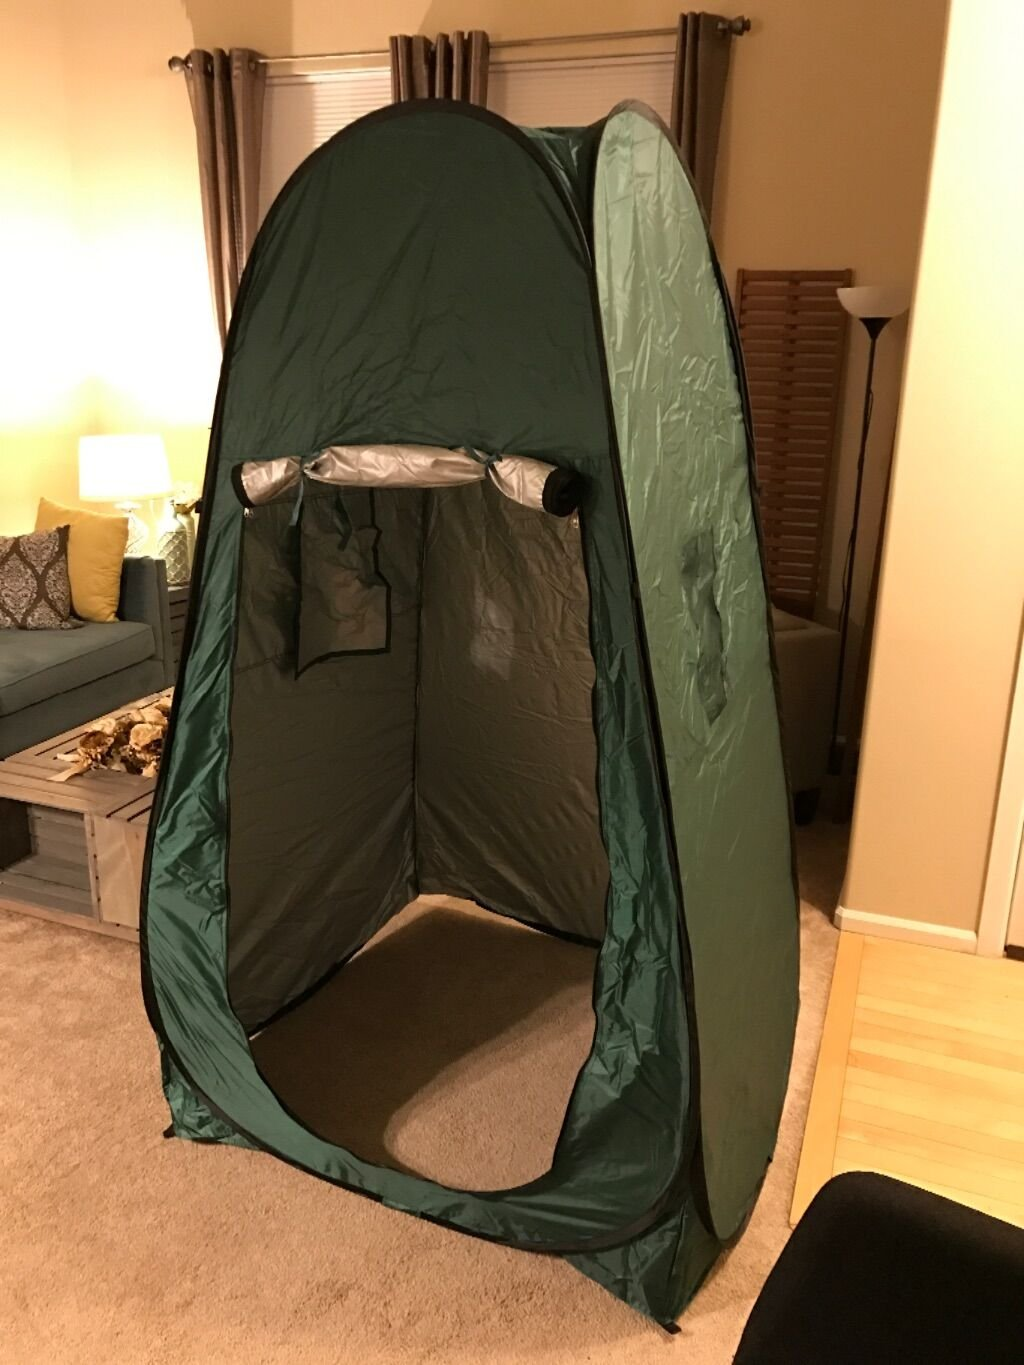 Outdoor Shower Tent, Instant pop-up pod Dressing Tents, Waterproof Portable Camping Toilet Changing Room - with window - Beach Privy Shelters Bathing Fitting Tent, with Carrying Bag (Navy Green) by T YONG TONG